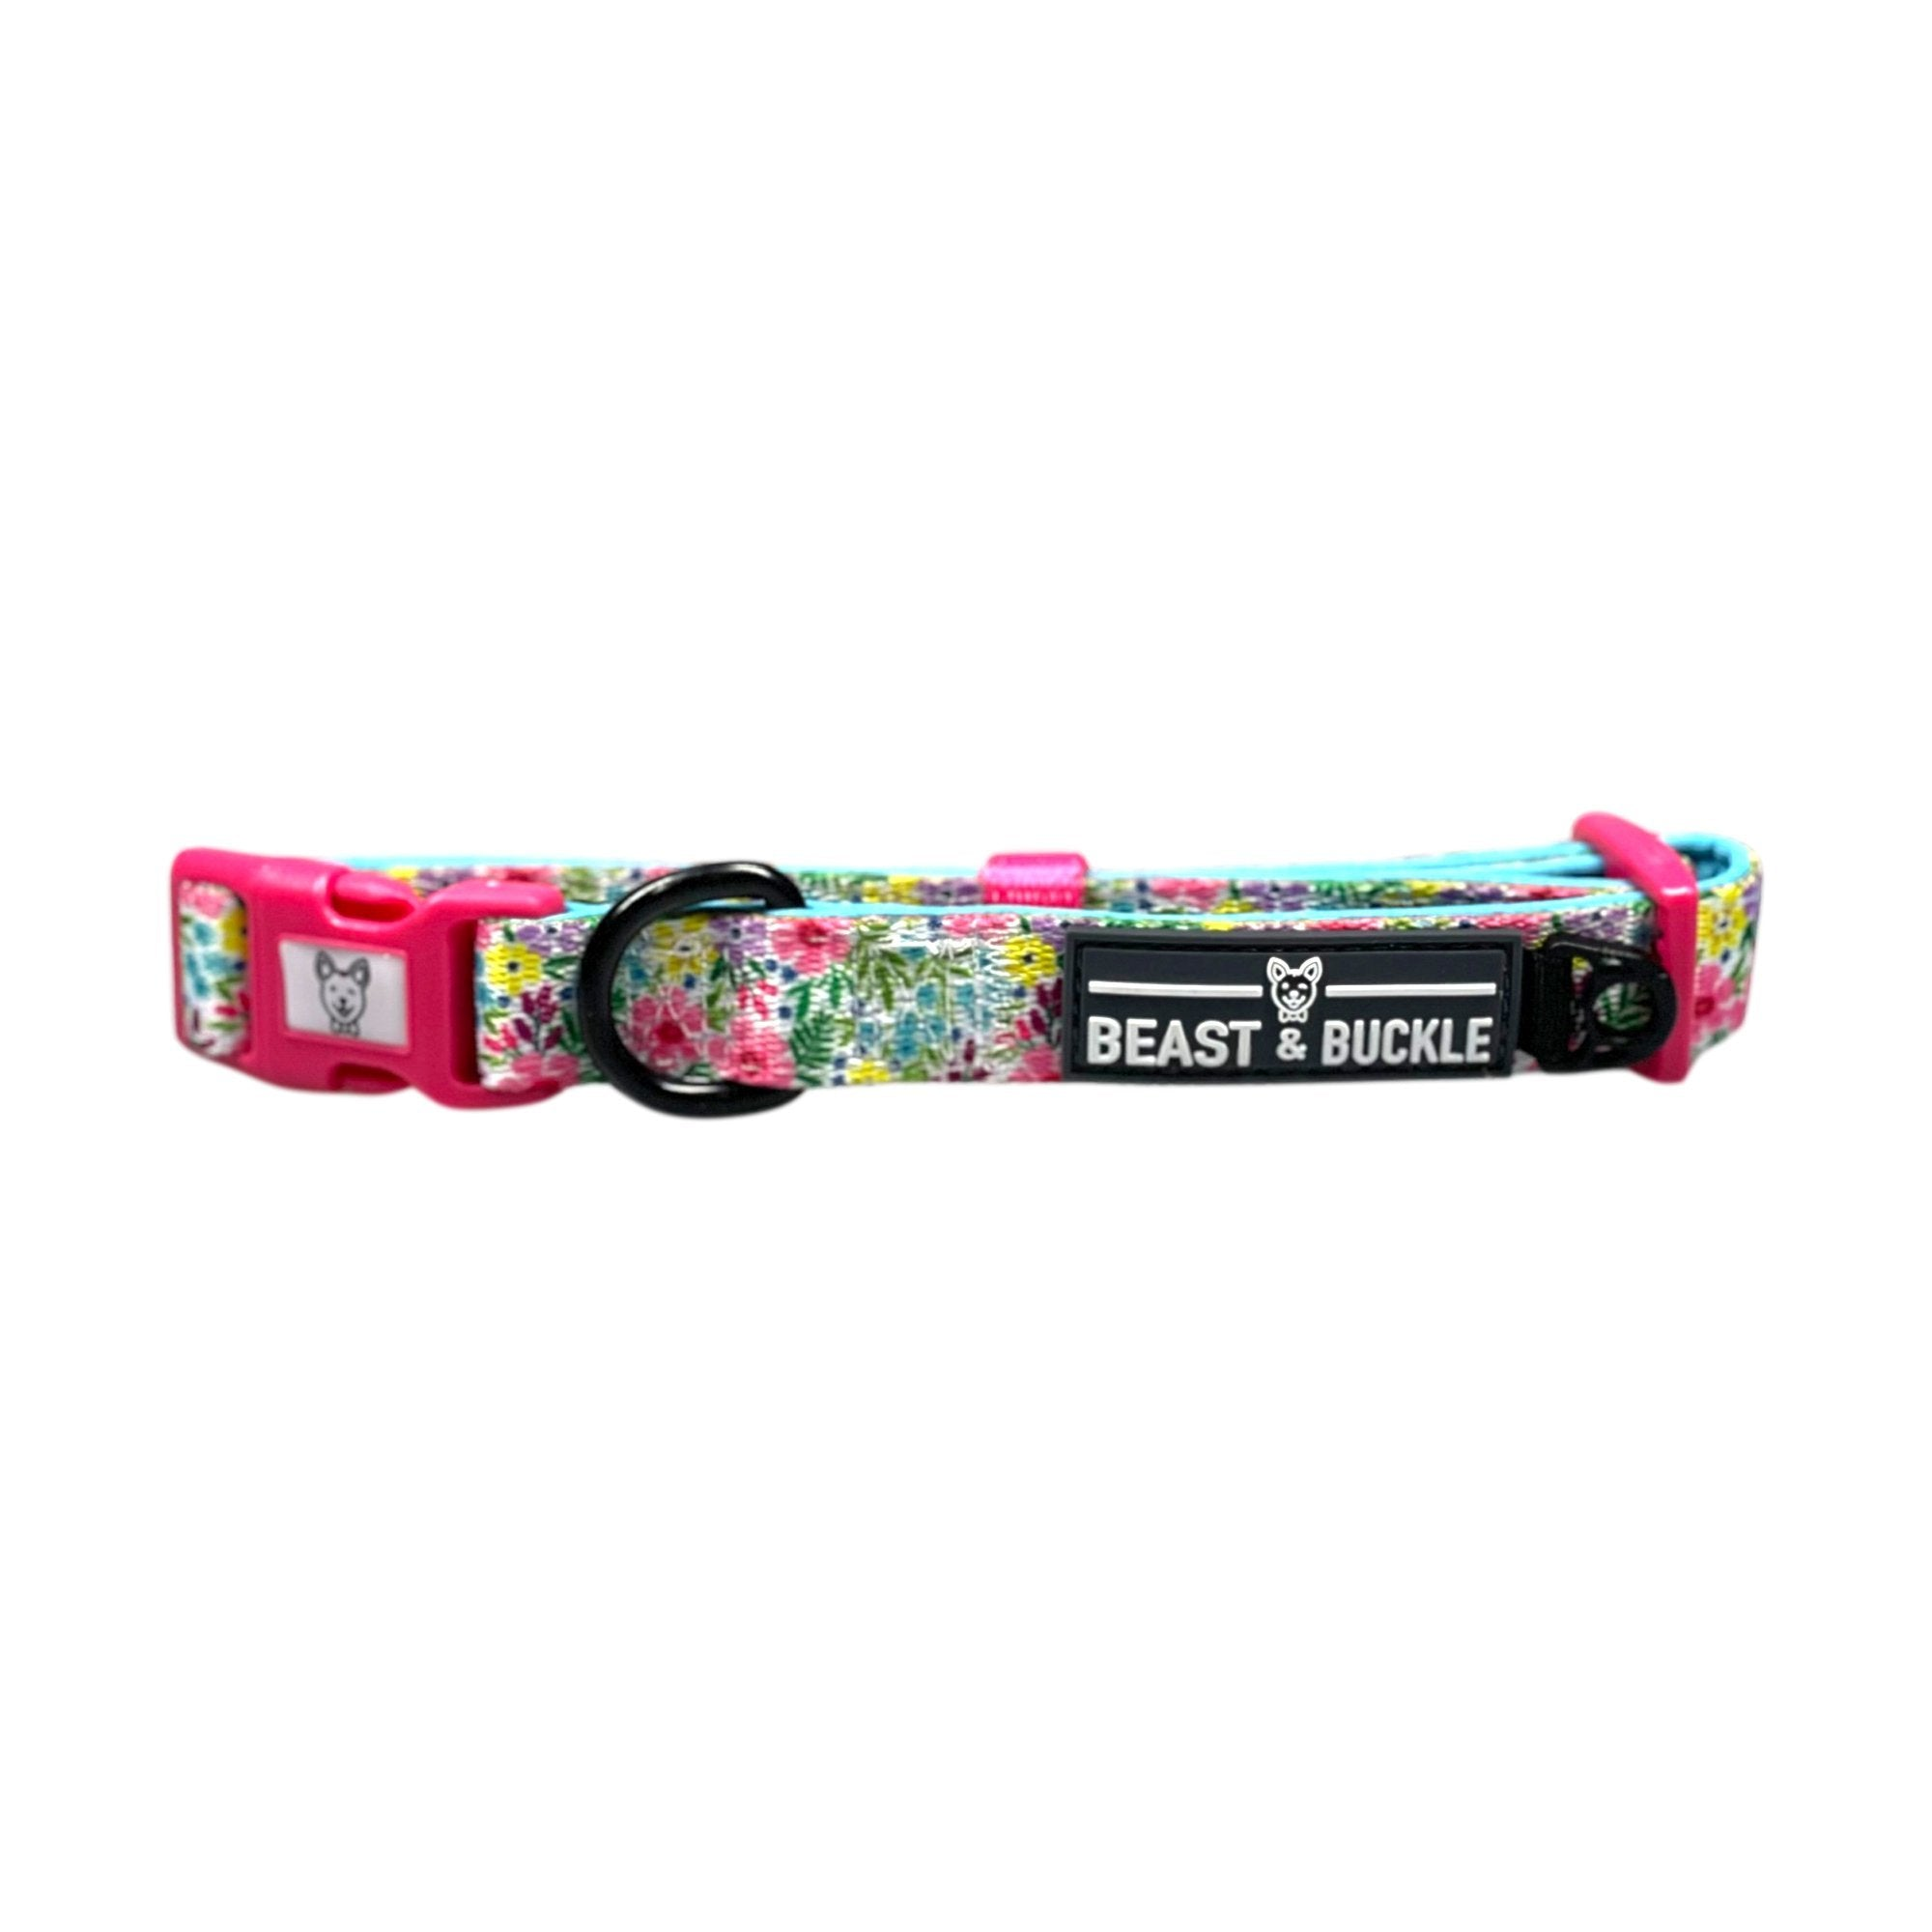 Floral Dog Collar - Beast & Buckle